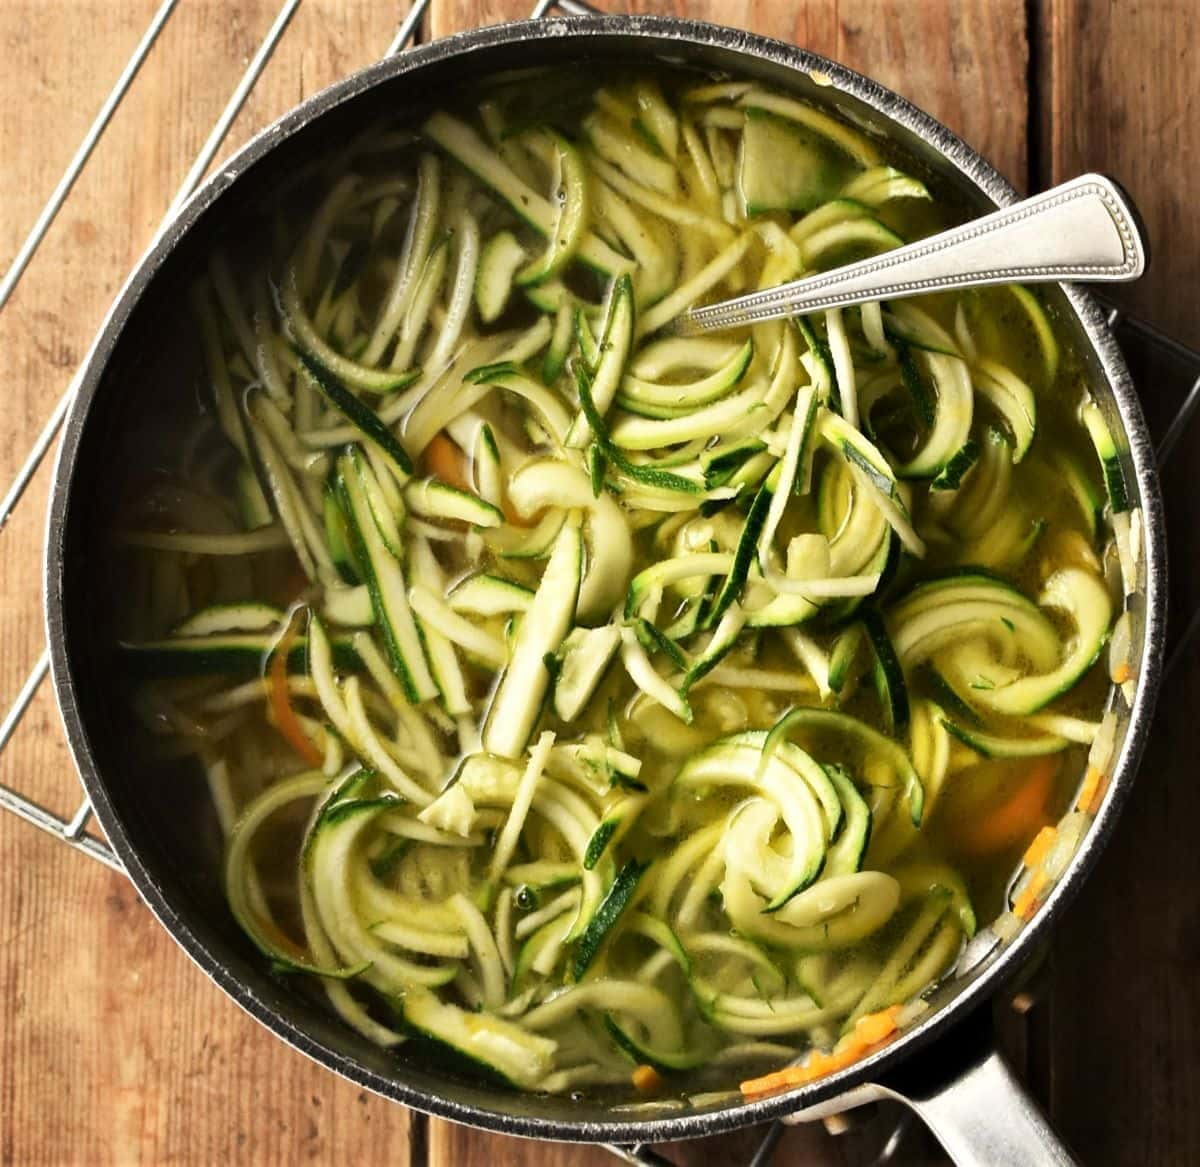 Zucchini noodles in pot with broth and spoon.